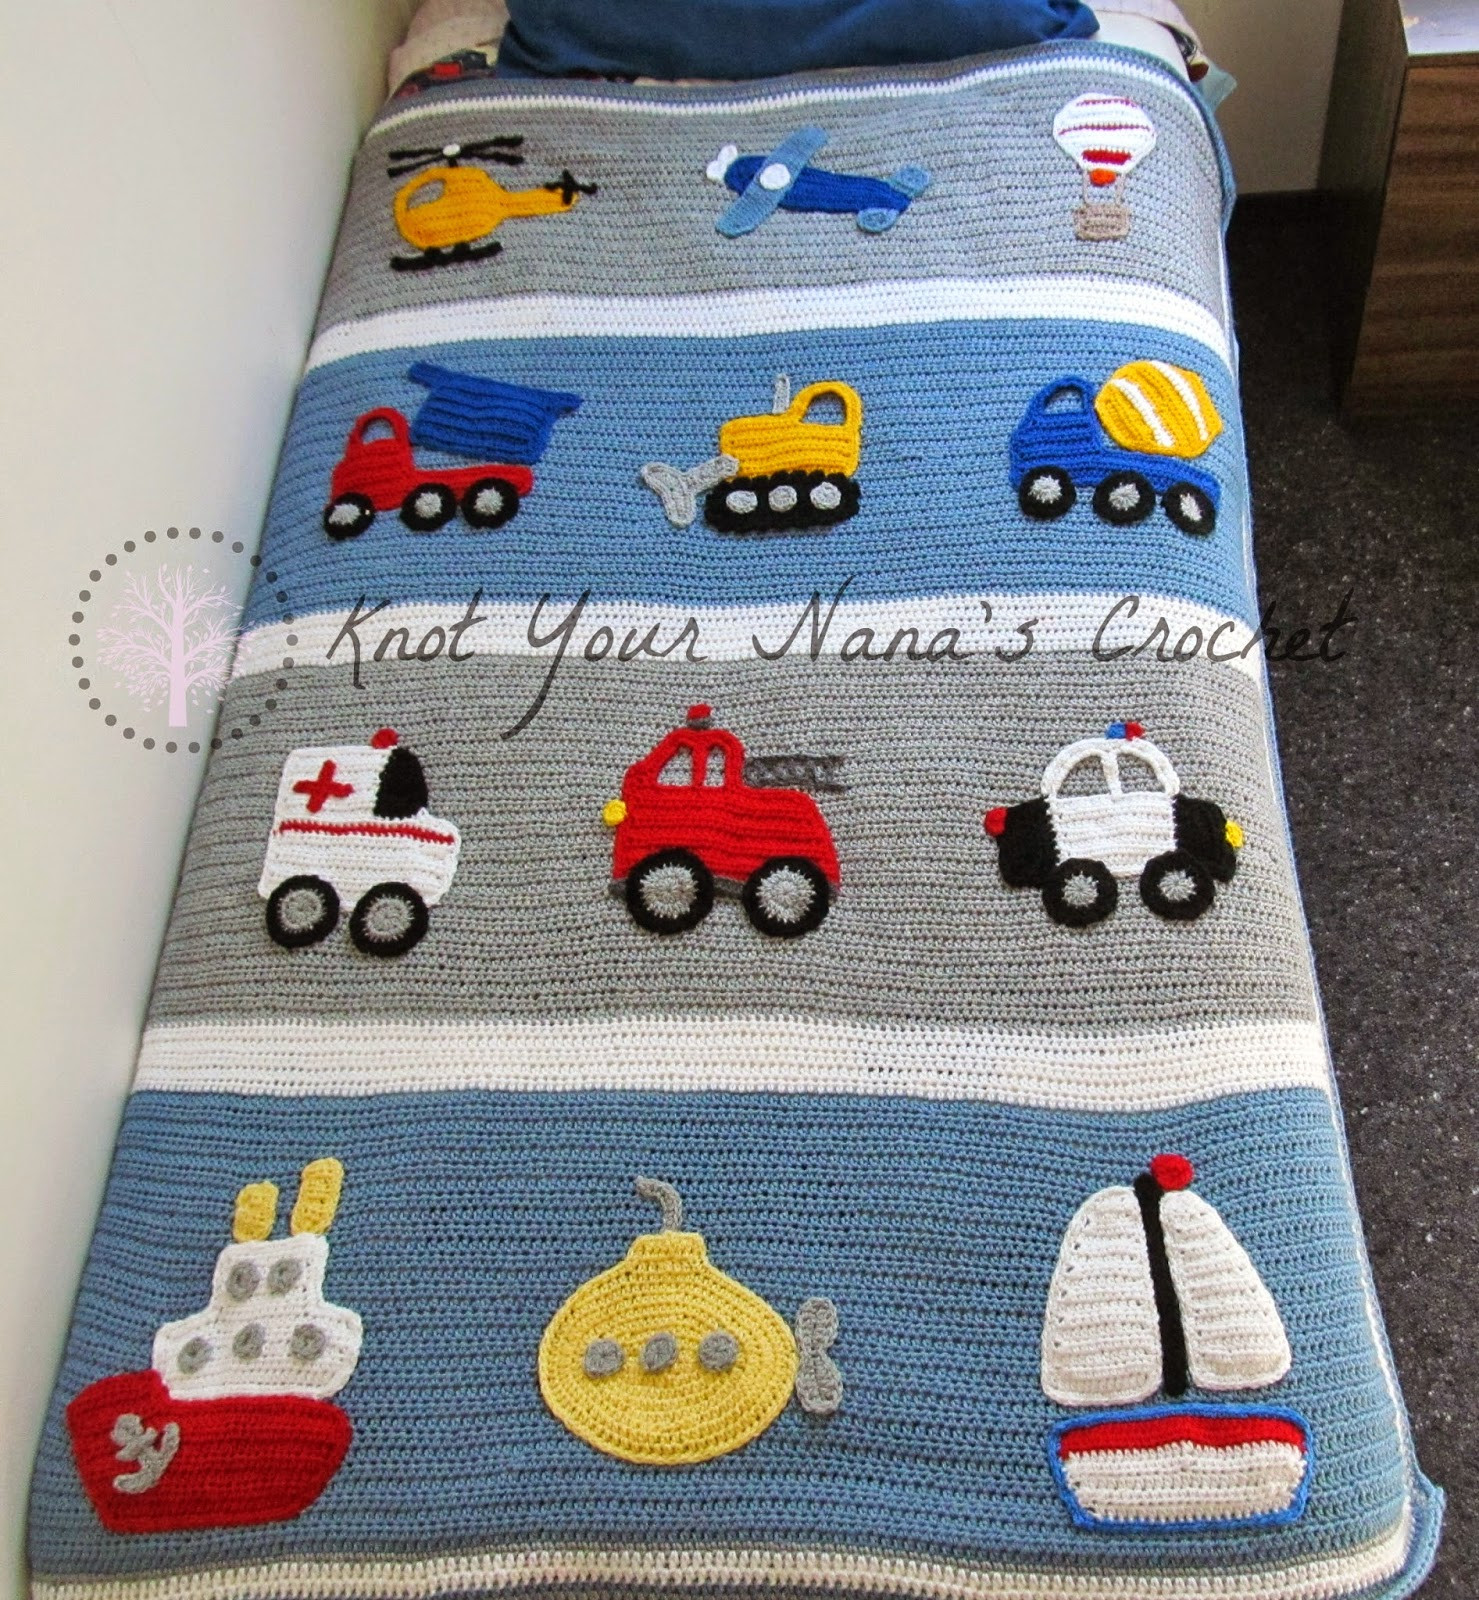 Baby Boy Crochet Blanket Patterns Inspirational Knot Your Nana S Crochet Boys Will Be Boys Of Baby Boy Crochet Blanket Patterns Best Of 10 Beautiful Baby Blanket Free Patterns